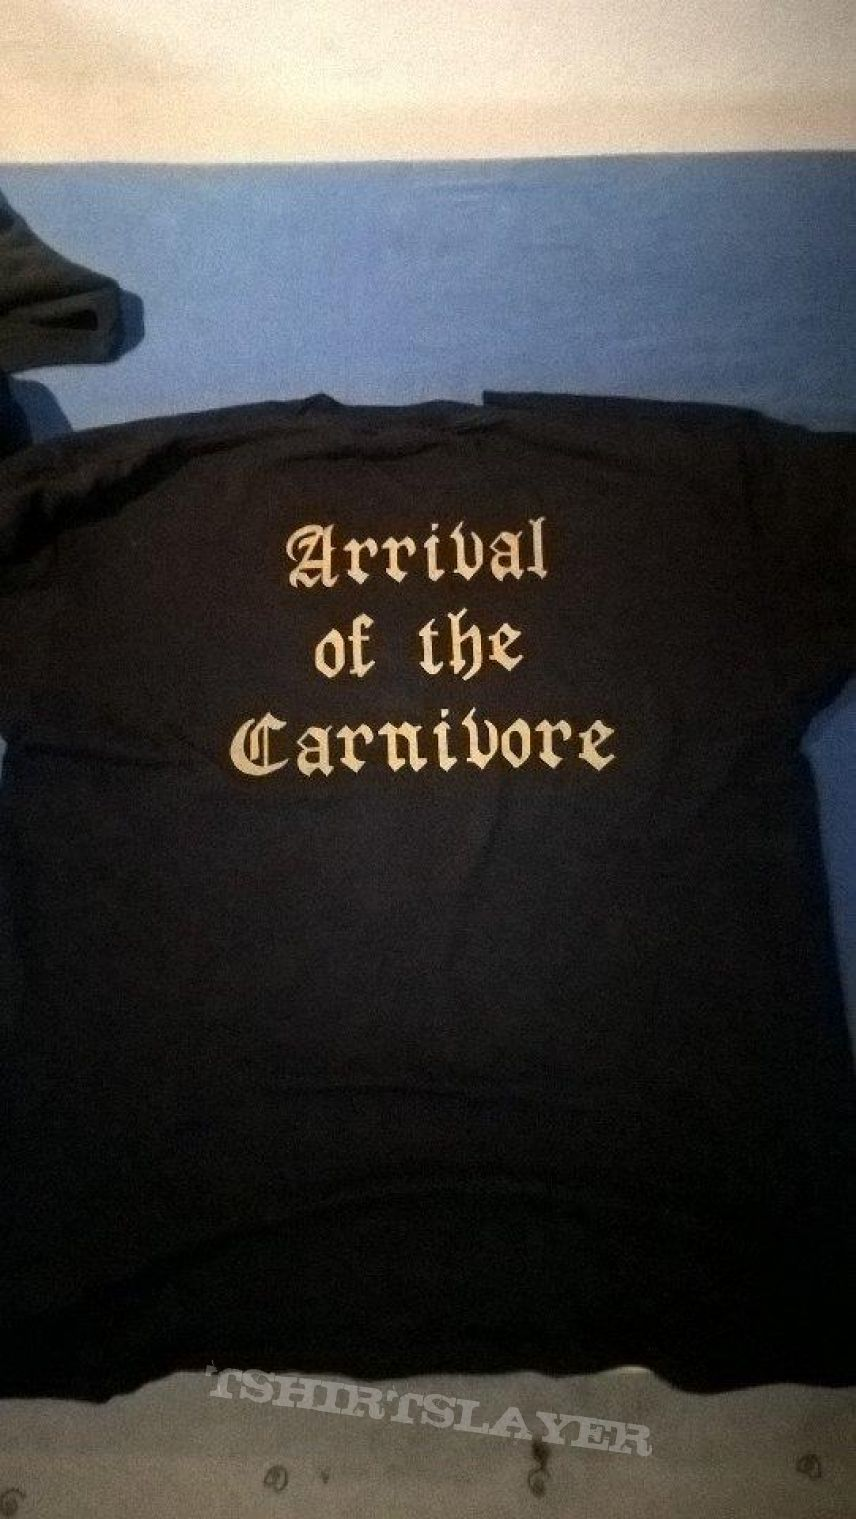 Nocturnal Arrival of the Carnivore Shirt (lim) in XL